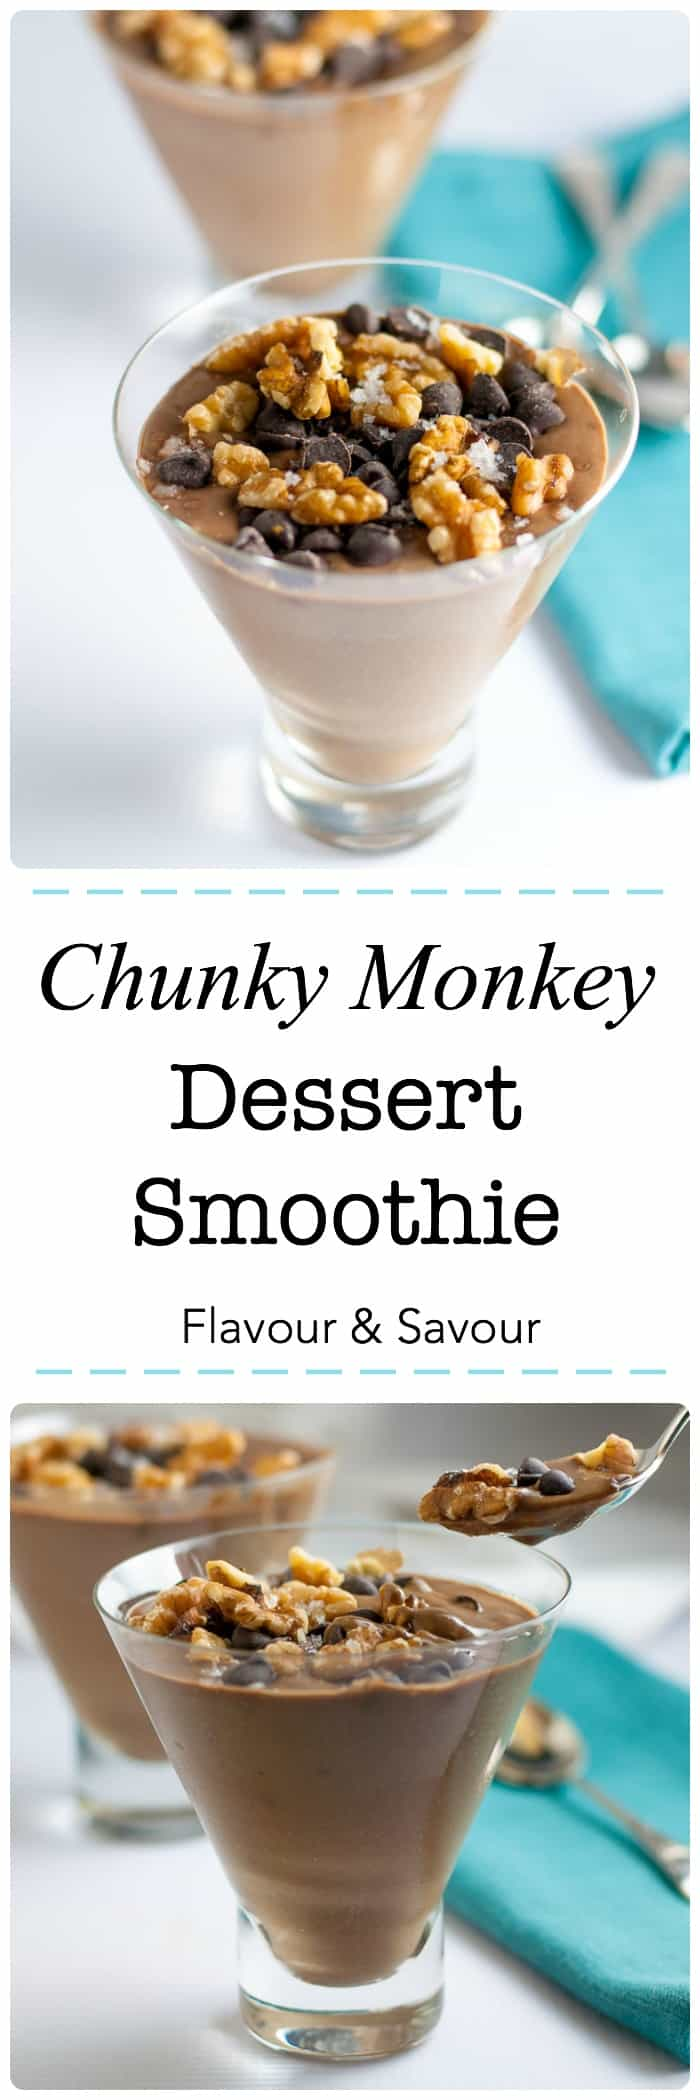 Chunky Monkey Dessert Smoothie. A nutritious dessert made with vegan protein shake, Silk non-dairy milk, banana, avocado, and nut butter. #SilkSummerofSmoothies #ad #VegaOne